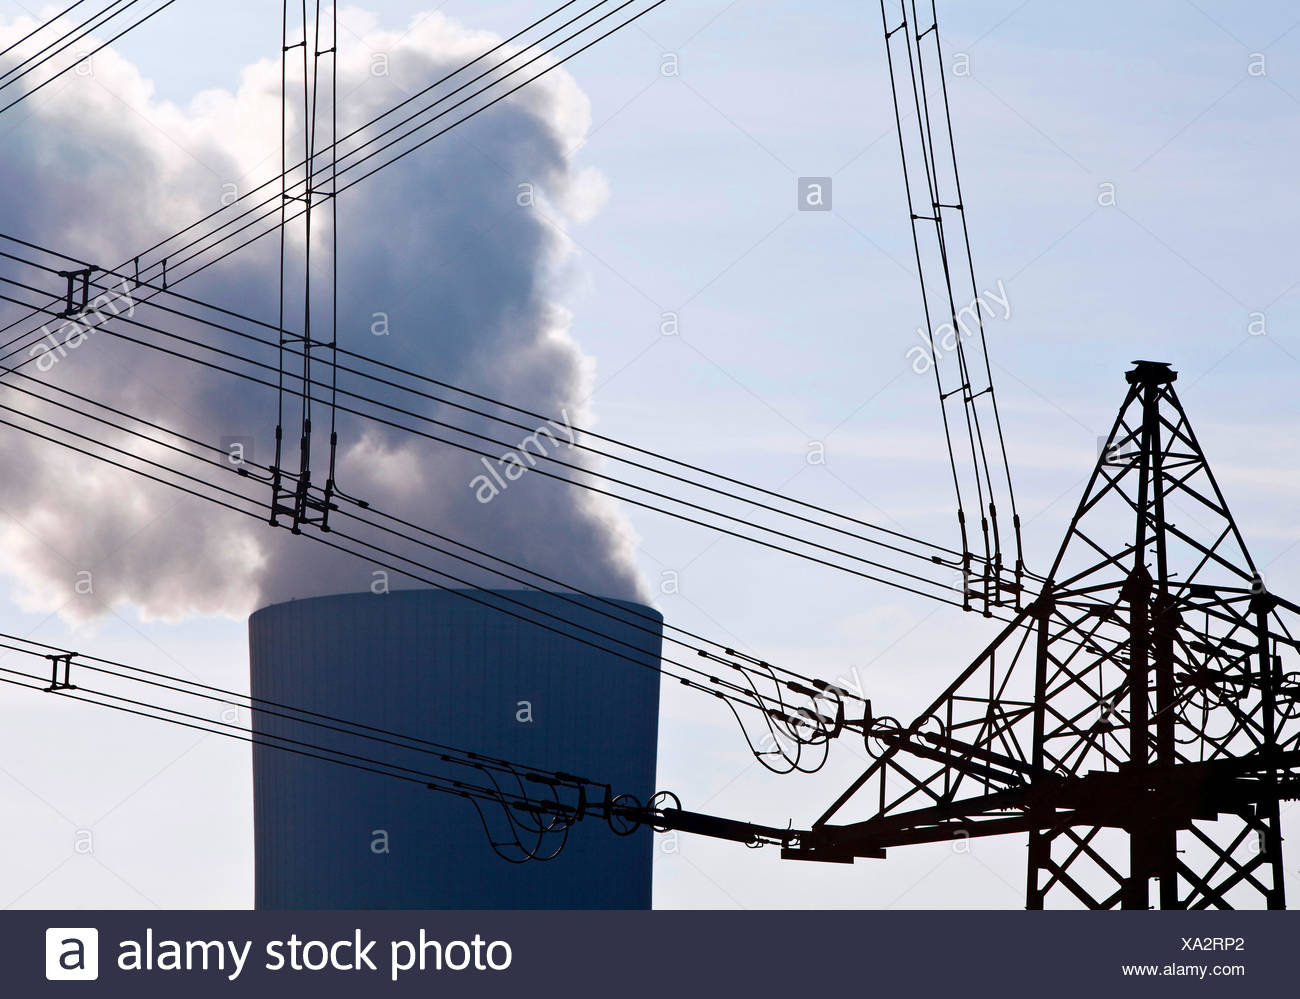 power pole with high voltage power lines and industry, Germany, North Rhine-Westphalia - Stock Image